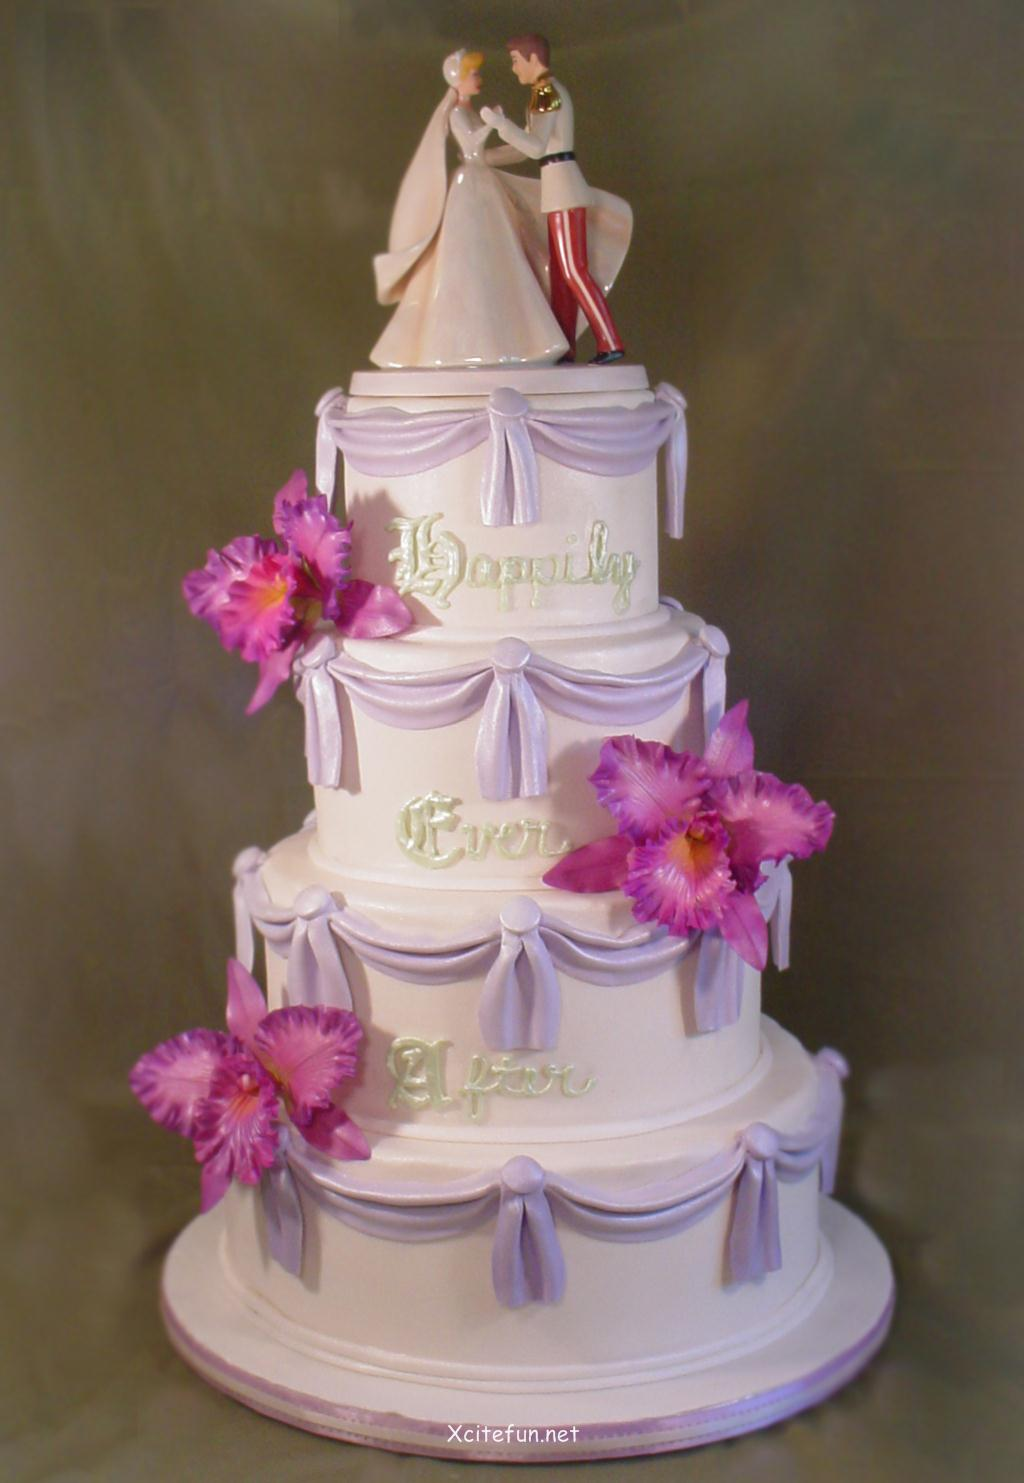 Cake Decoration Wedding : Wedding Cakes - Decorating Ideas - XciteFun.net